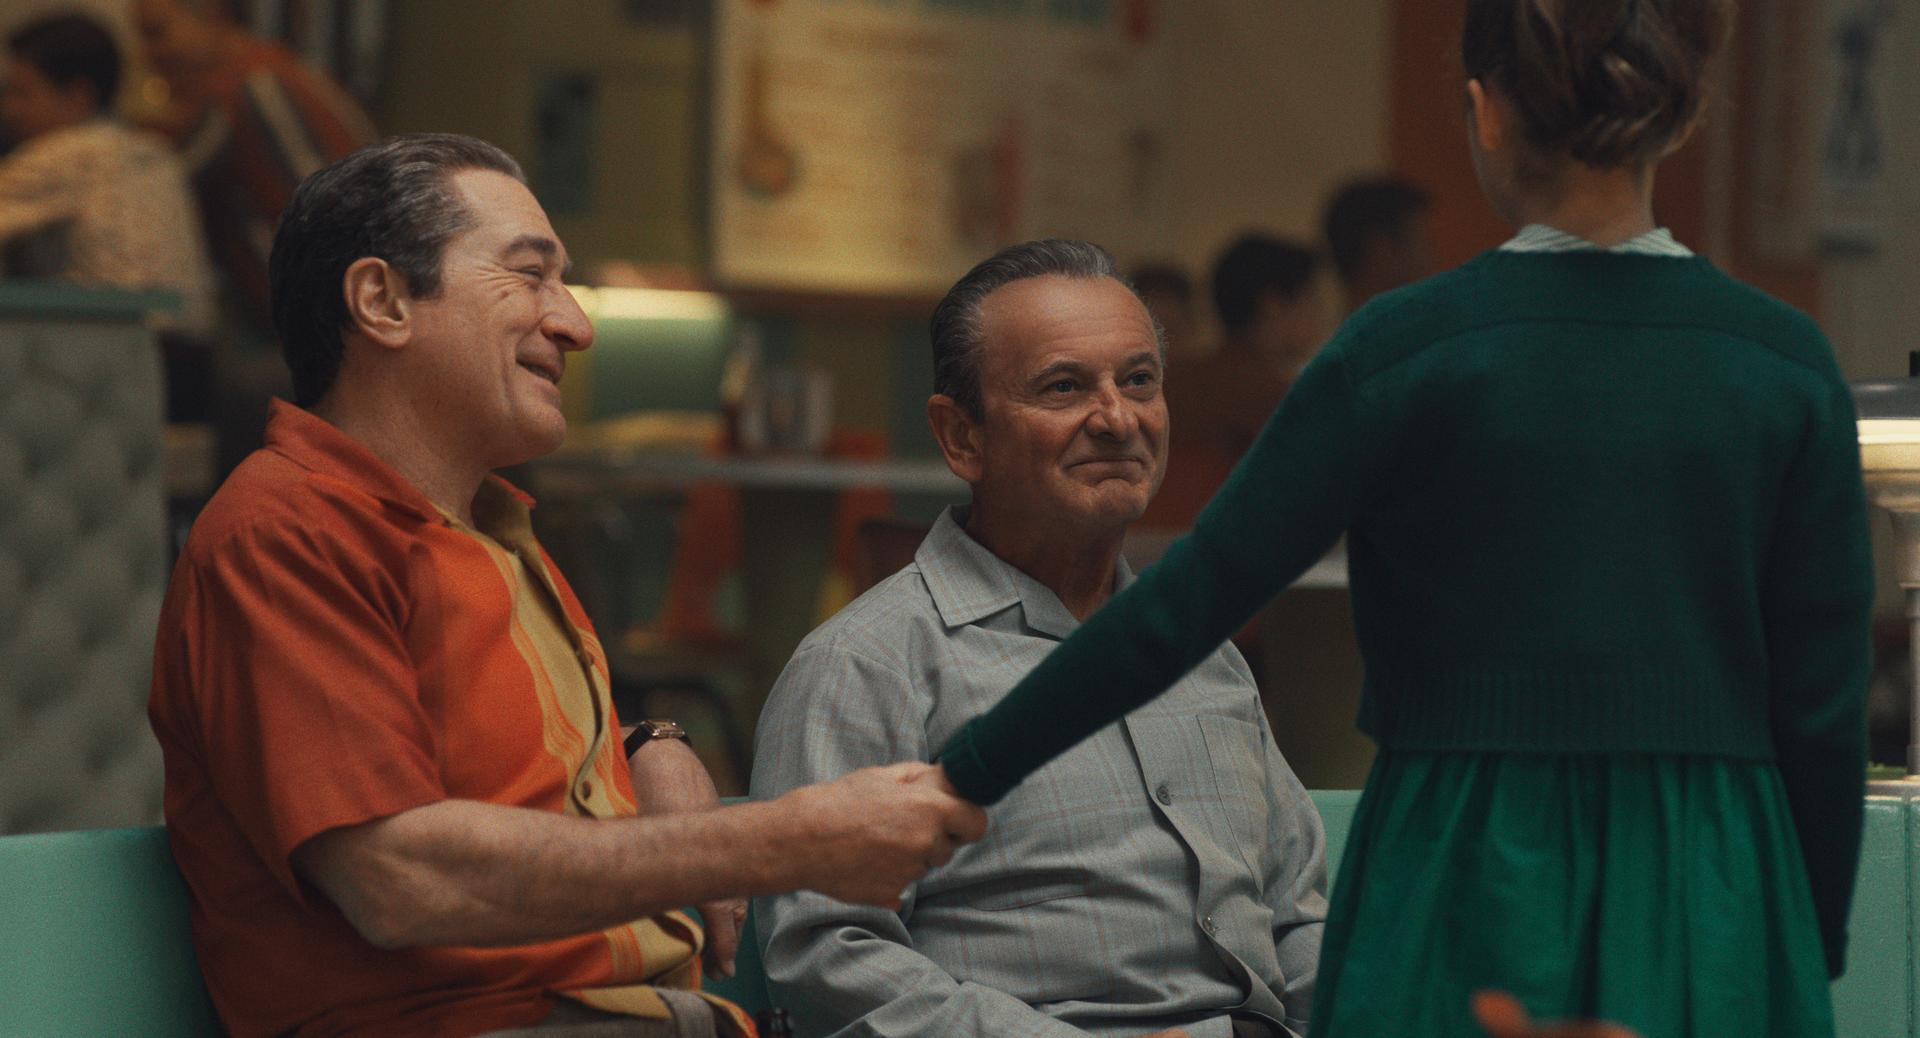 Robert De Niro (left) and Joe Pesci in <i>The Irishman</i>.